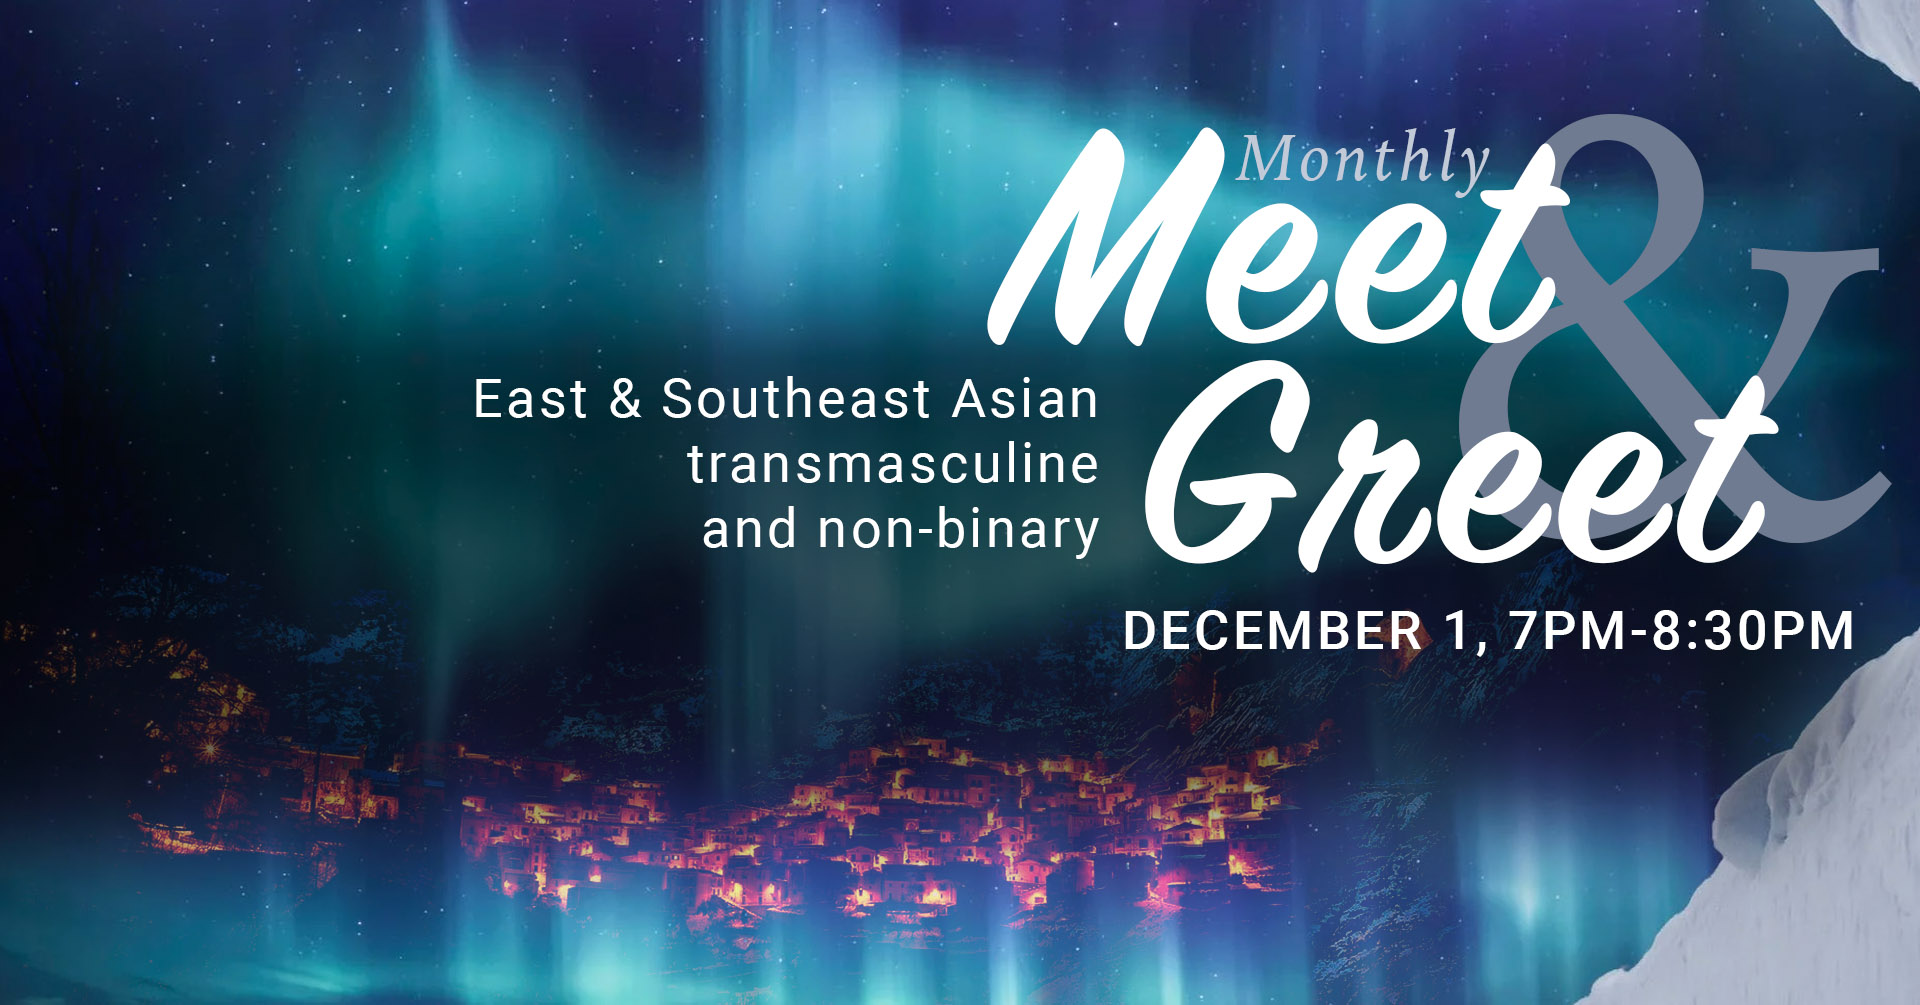 poster for monthly asian transmasc group